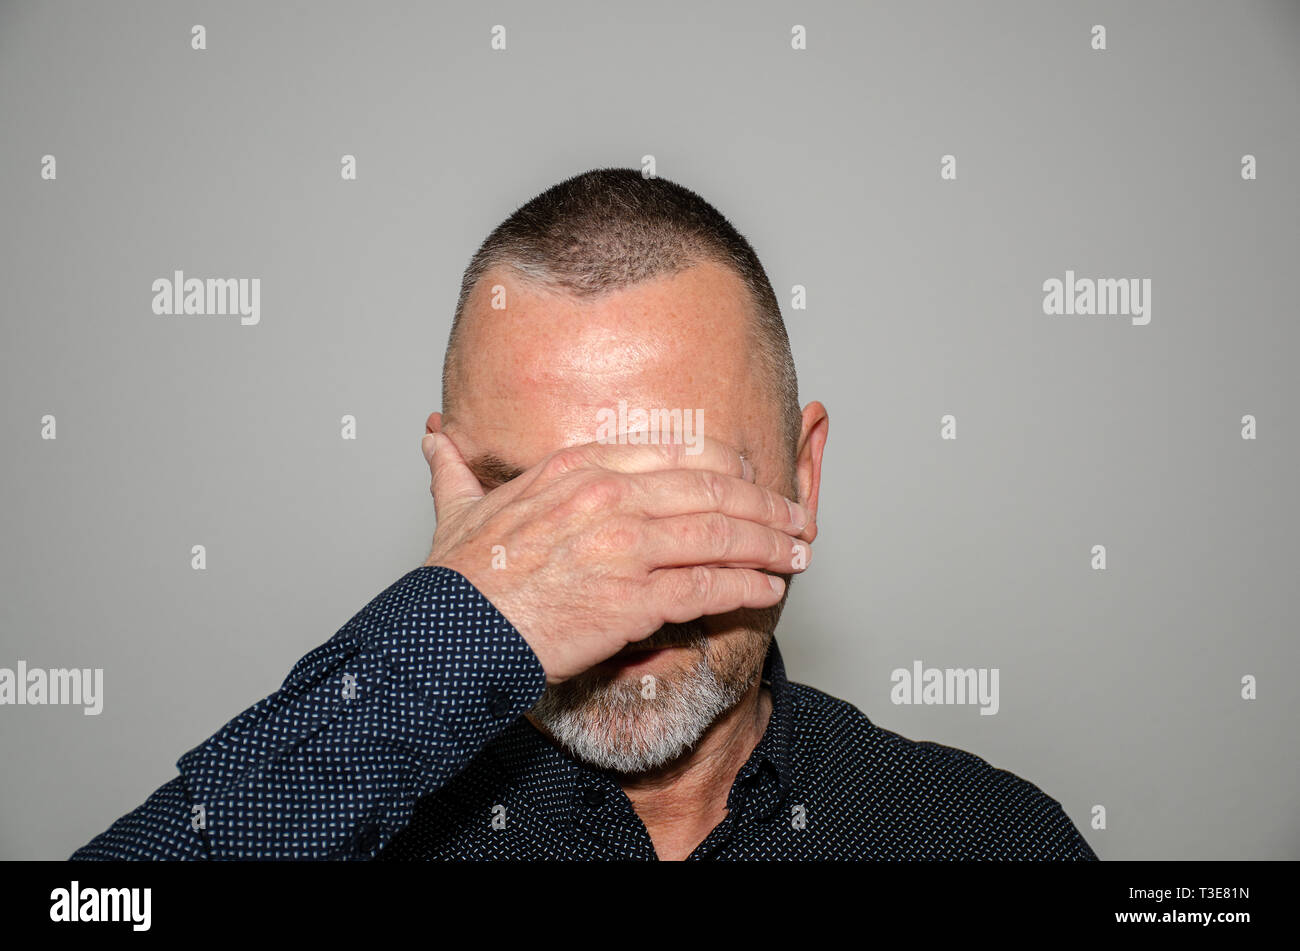 Man covering his eyes with one hand in shame or embarrassment or in a concept of see no evil over a grey studio background - Stock Image